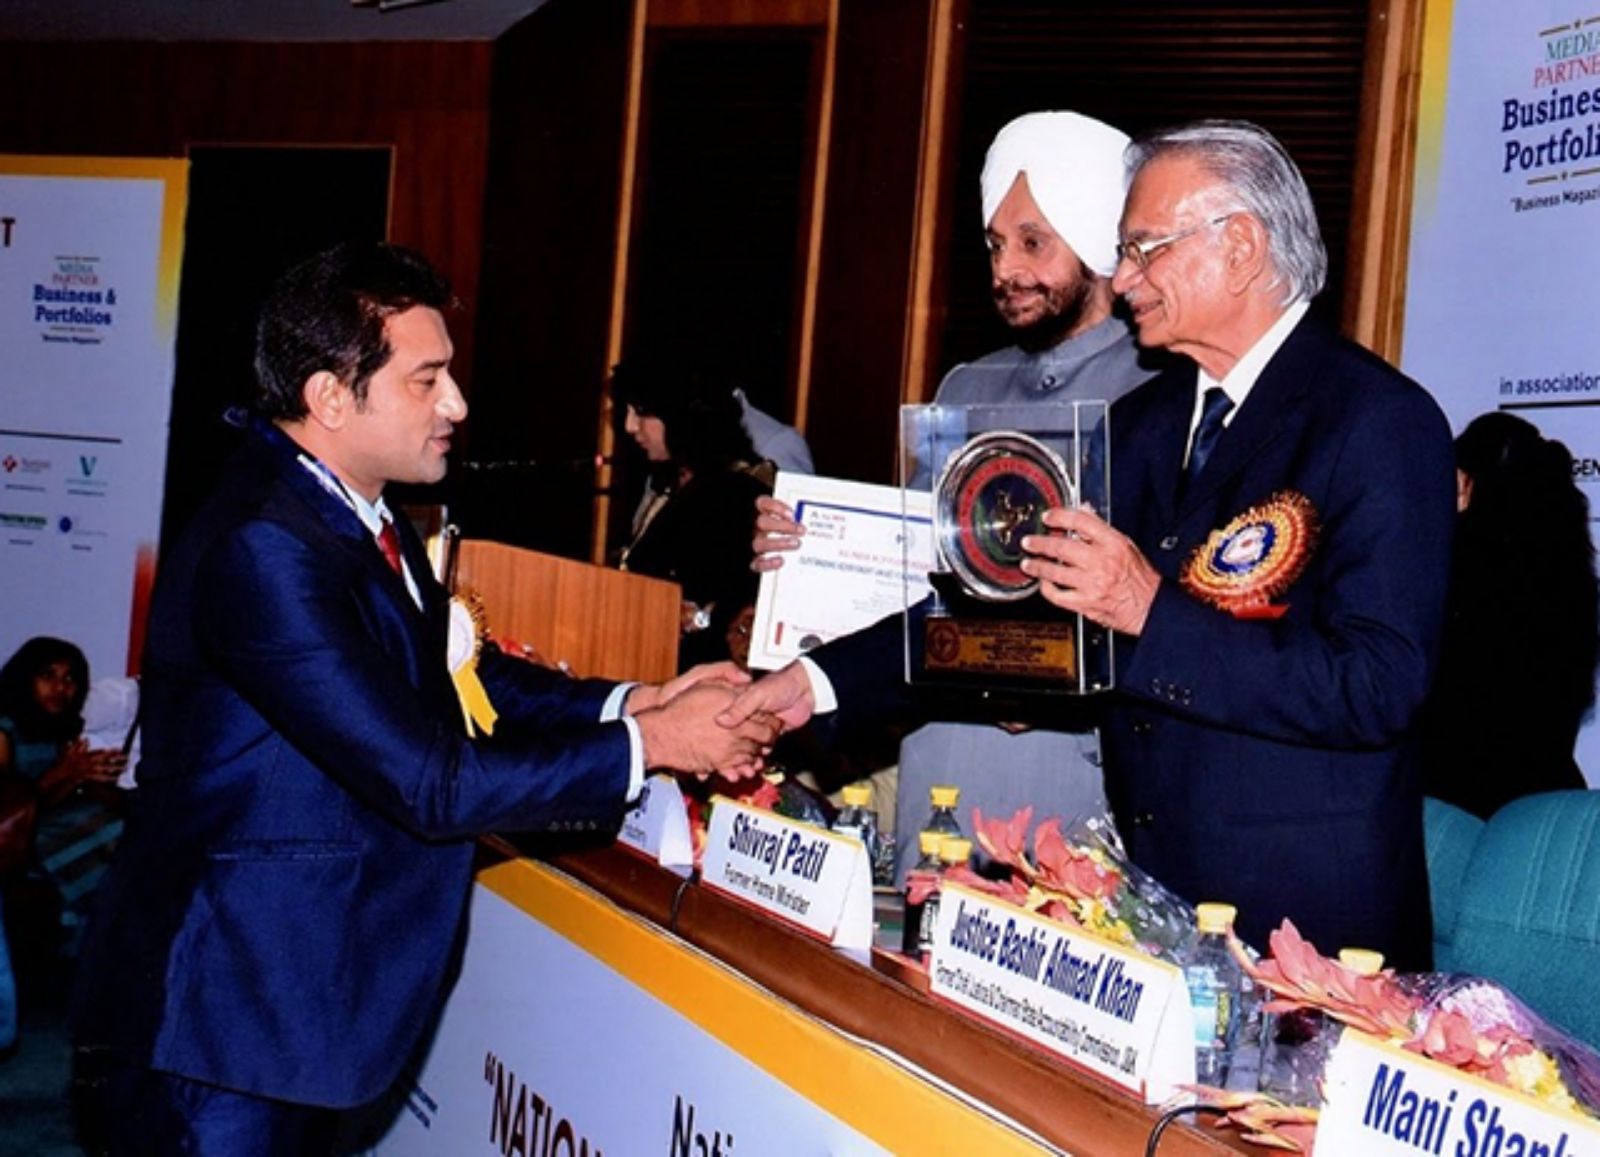 westline recieved IERDA award in delhi